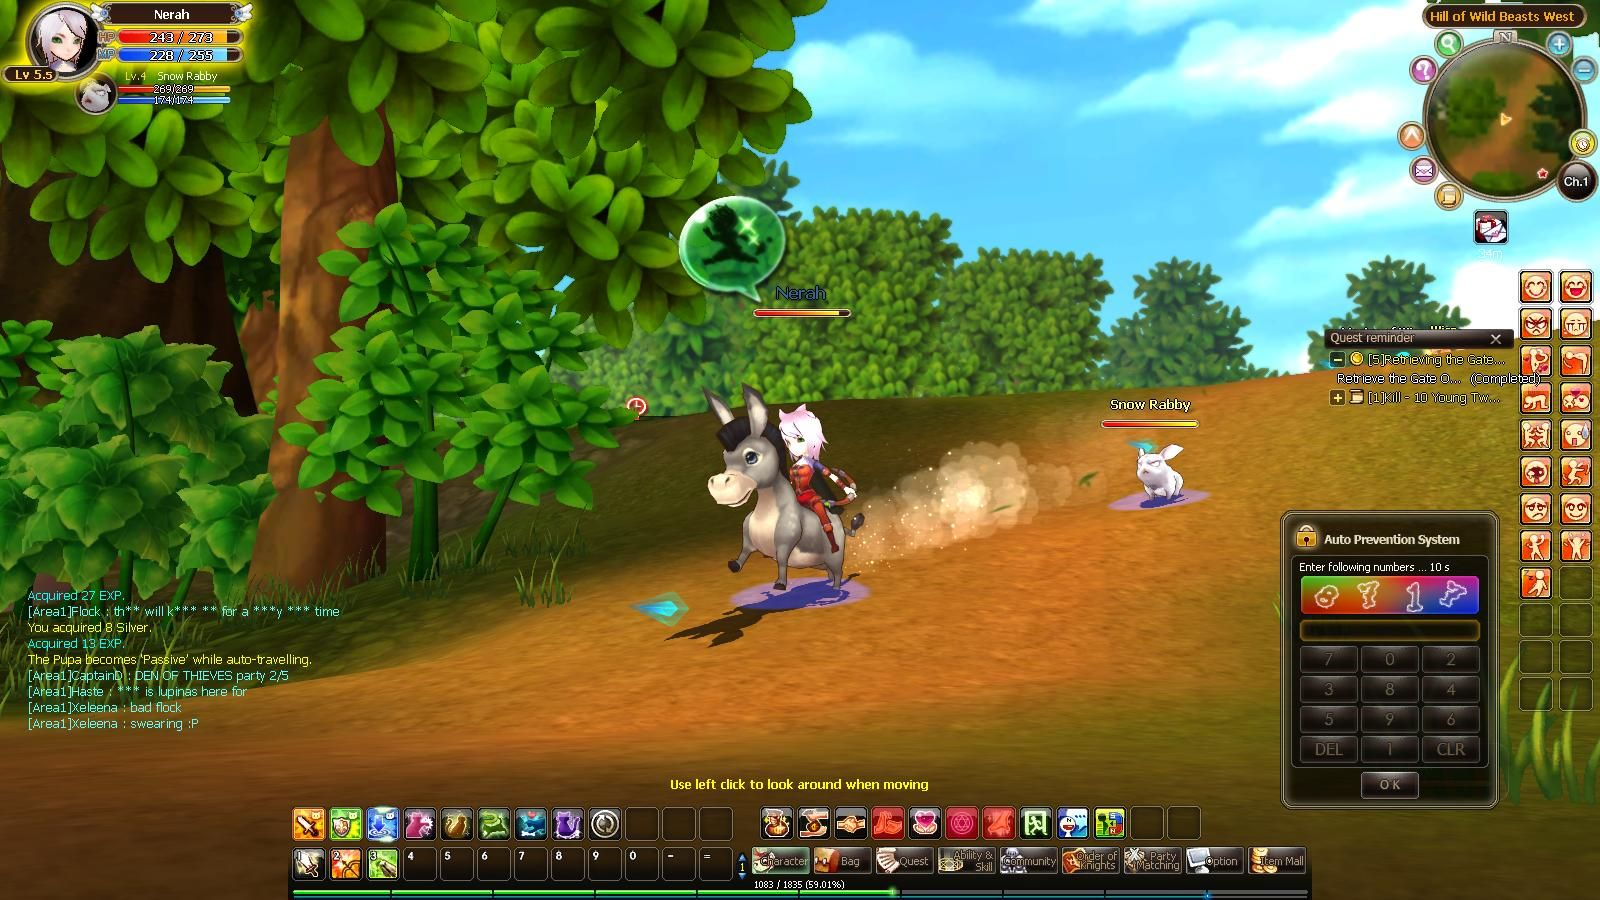 fantasy-mmorpg-mmo-games-knight-age-screenshot-24.jpg